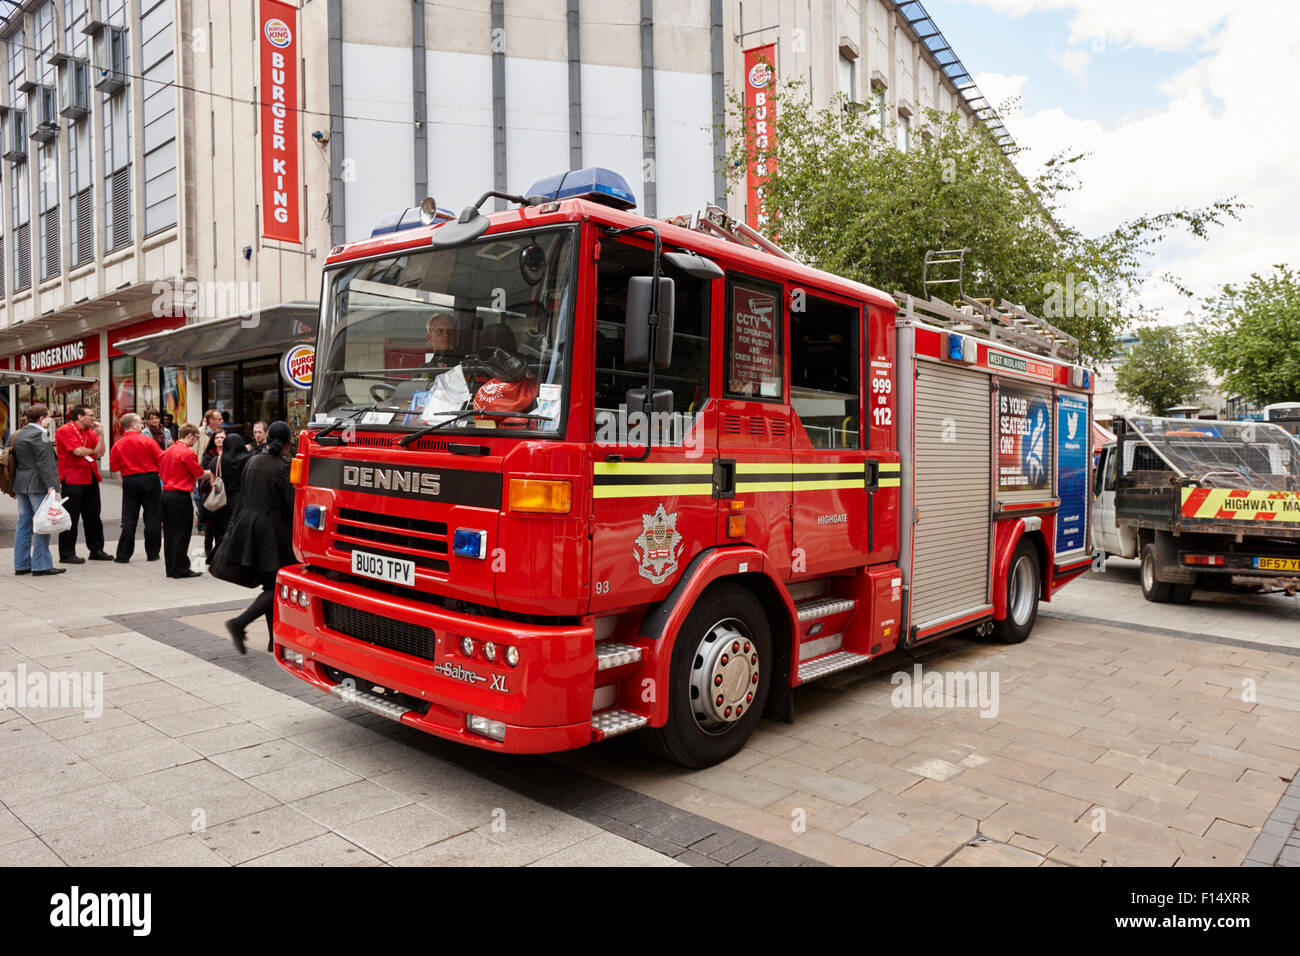 west midlands fire service dennis engine on call in Birmingham city centre UK - Stock Image